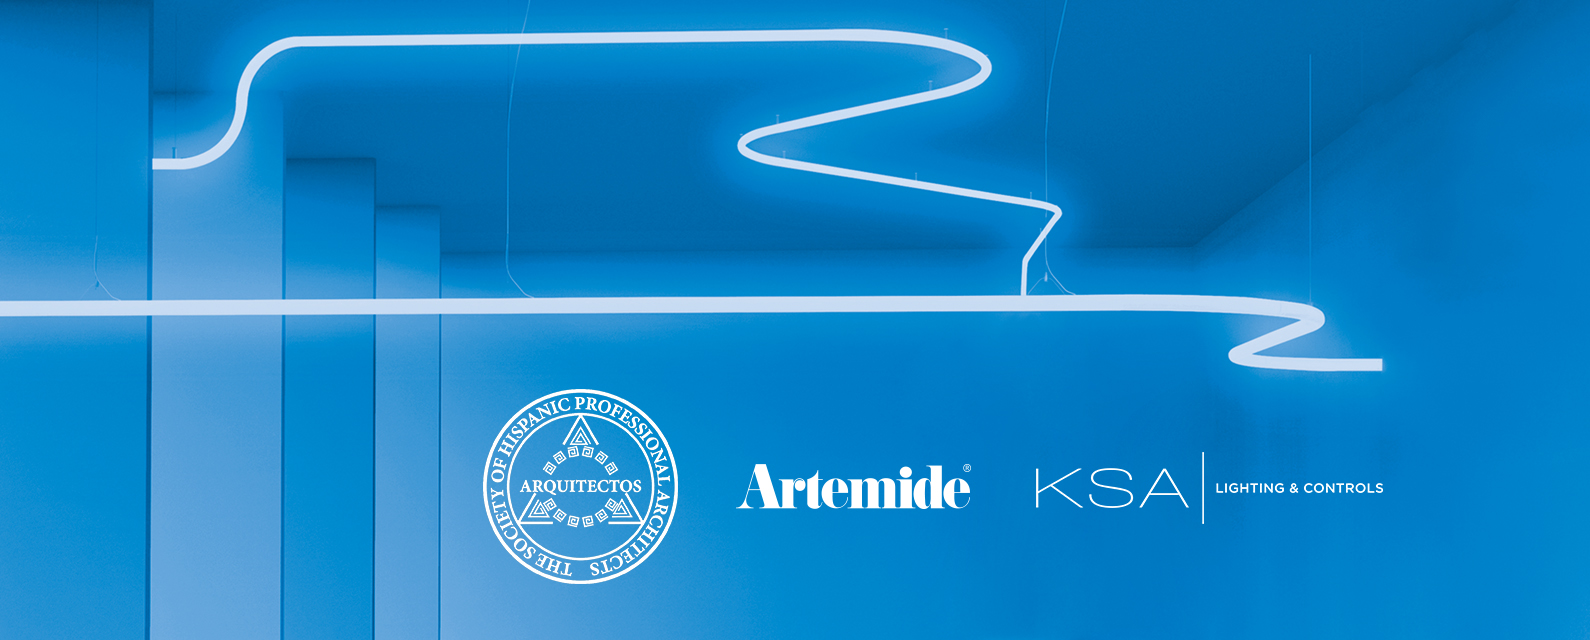 Alphabet of Light recessed and suspension with a blue background. Artemide introducing Alphabet of light system. Artemide & KSA Lighting & Controls to Host Arquitectos General Body Meeting in Chicago